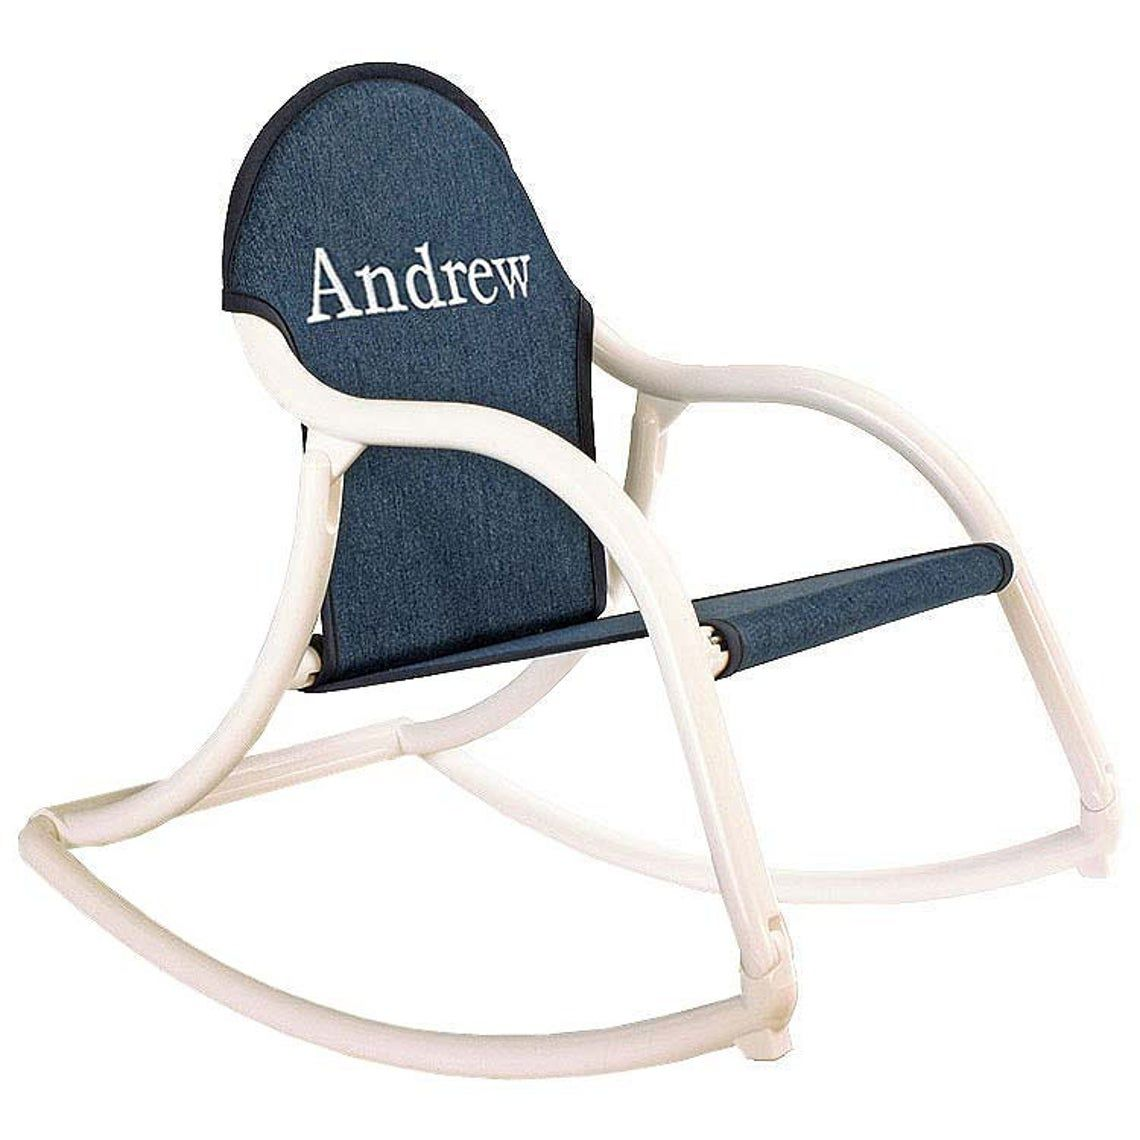 kid-sized rocking chair with denim seat and white arms embroidered with the name Andrew